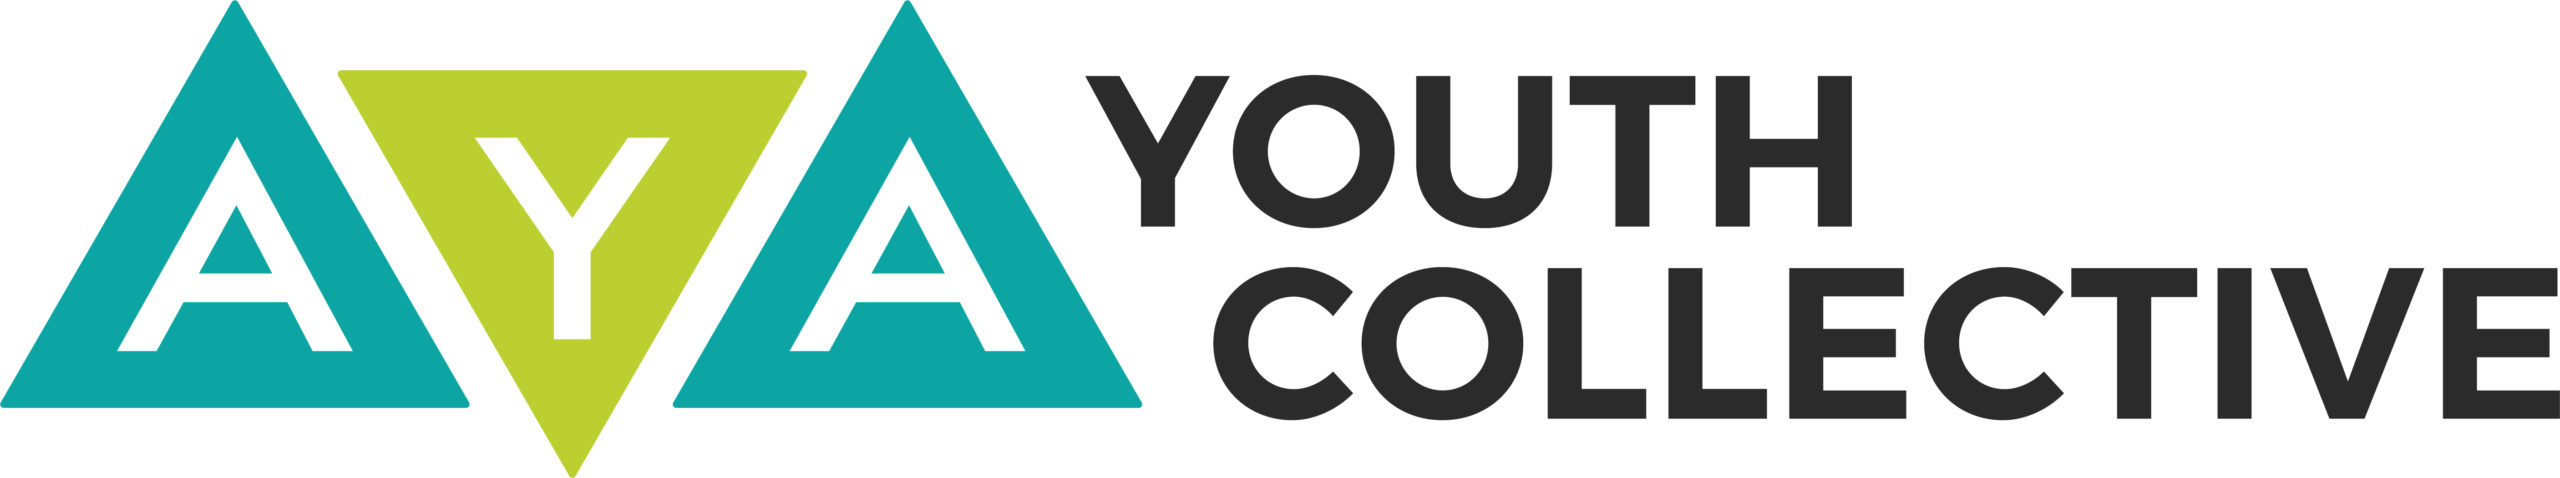 AYA Youth Collective